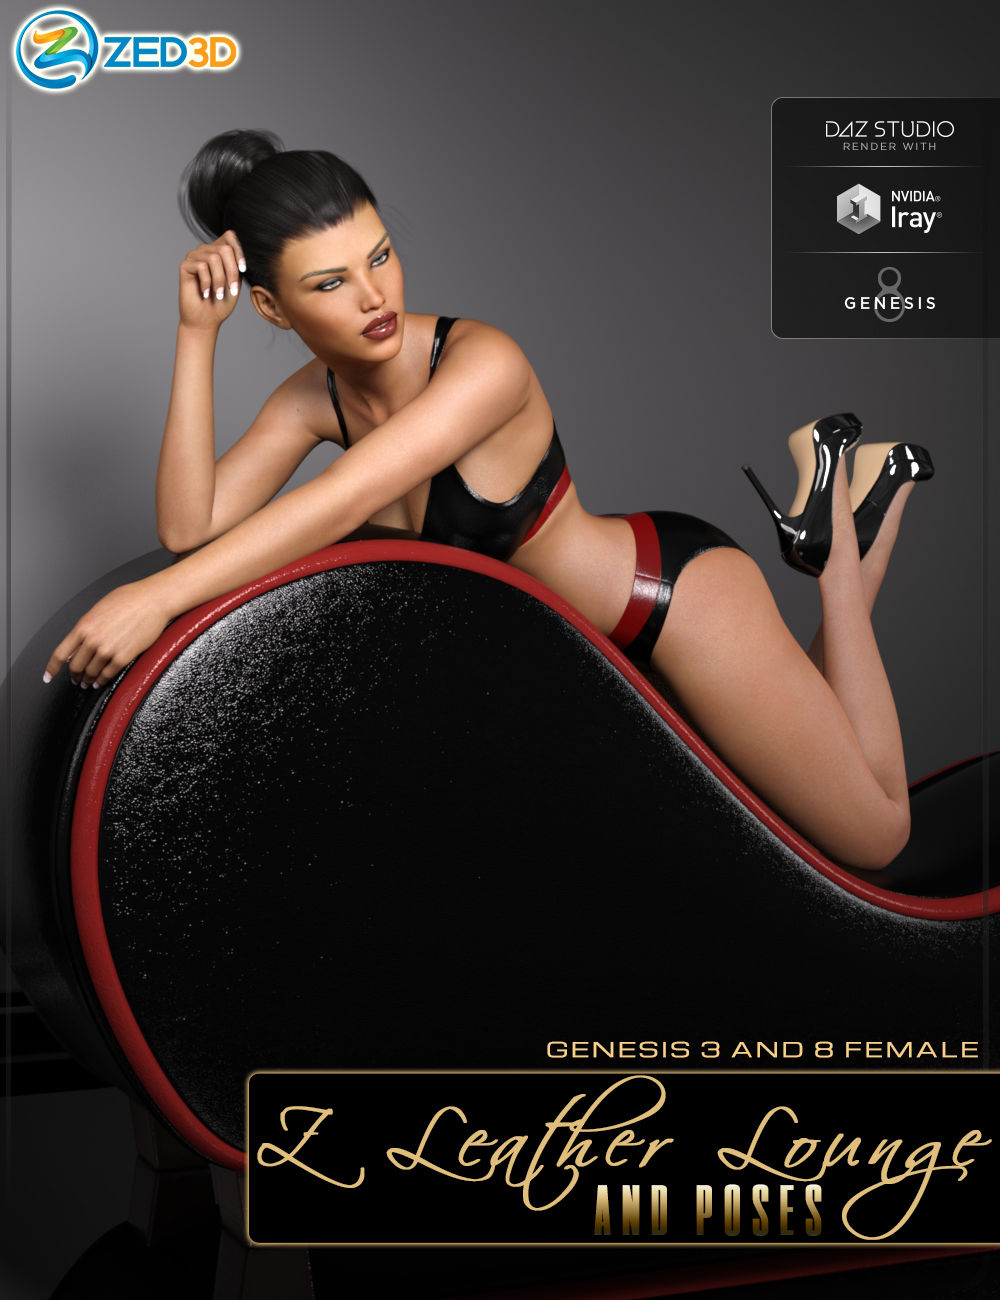 Z Leather Lounge - Prop and Poses for Genesis 3 and 8 Female by: Zeddicuss, 3D Models by Daz 3D